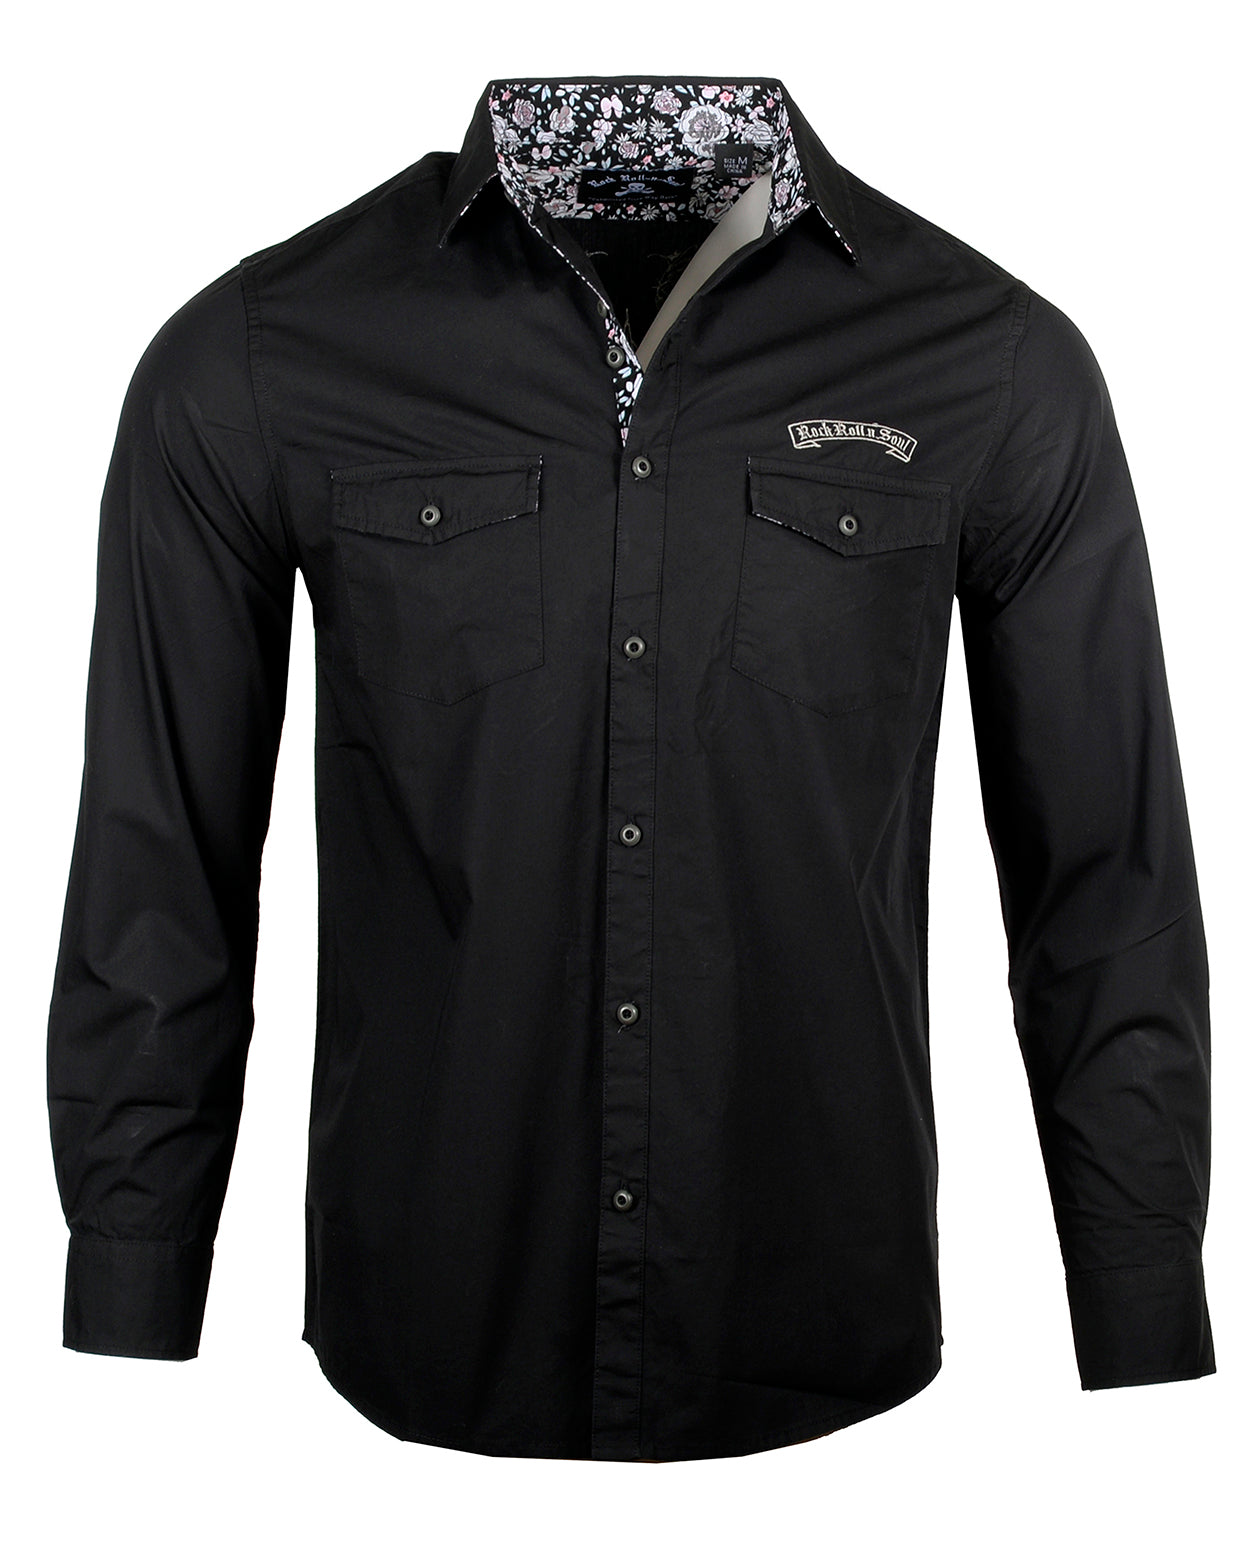 Men's Casual Fashion Button Up Shirt - Time is Running Out by Rock Roll n Soul